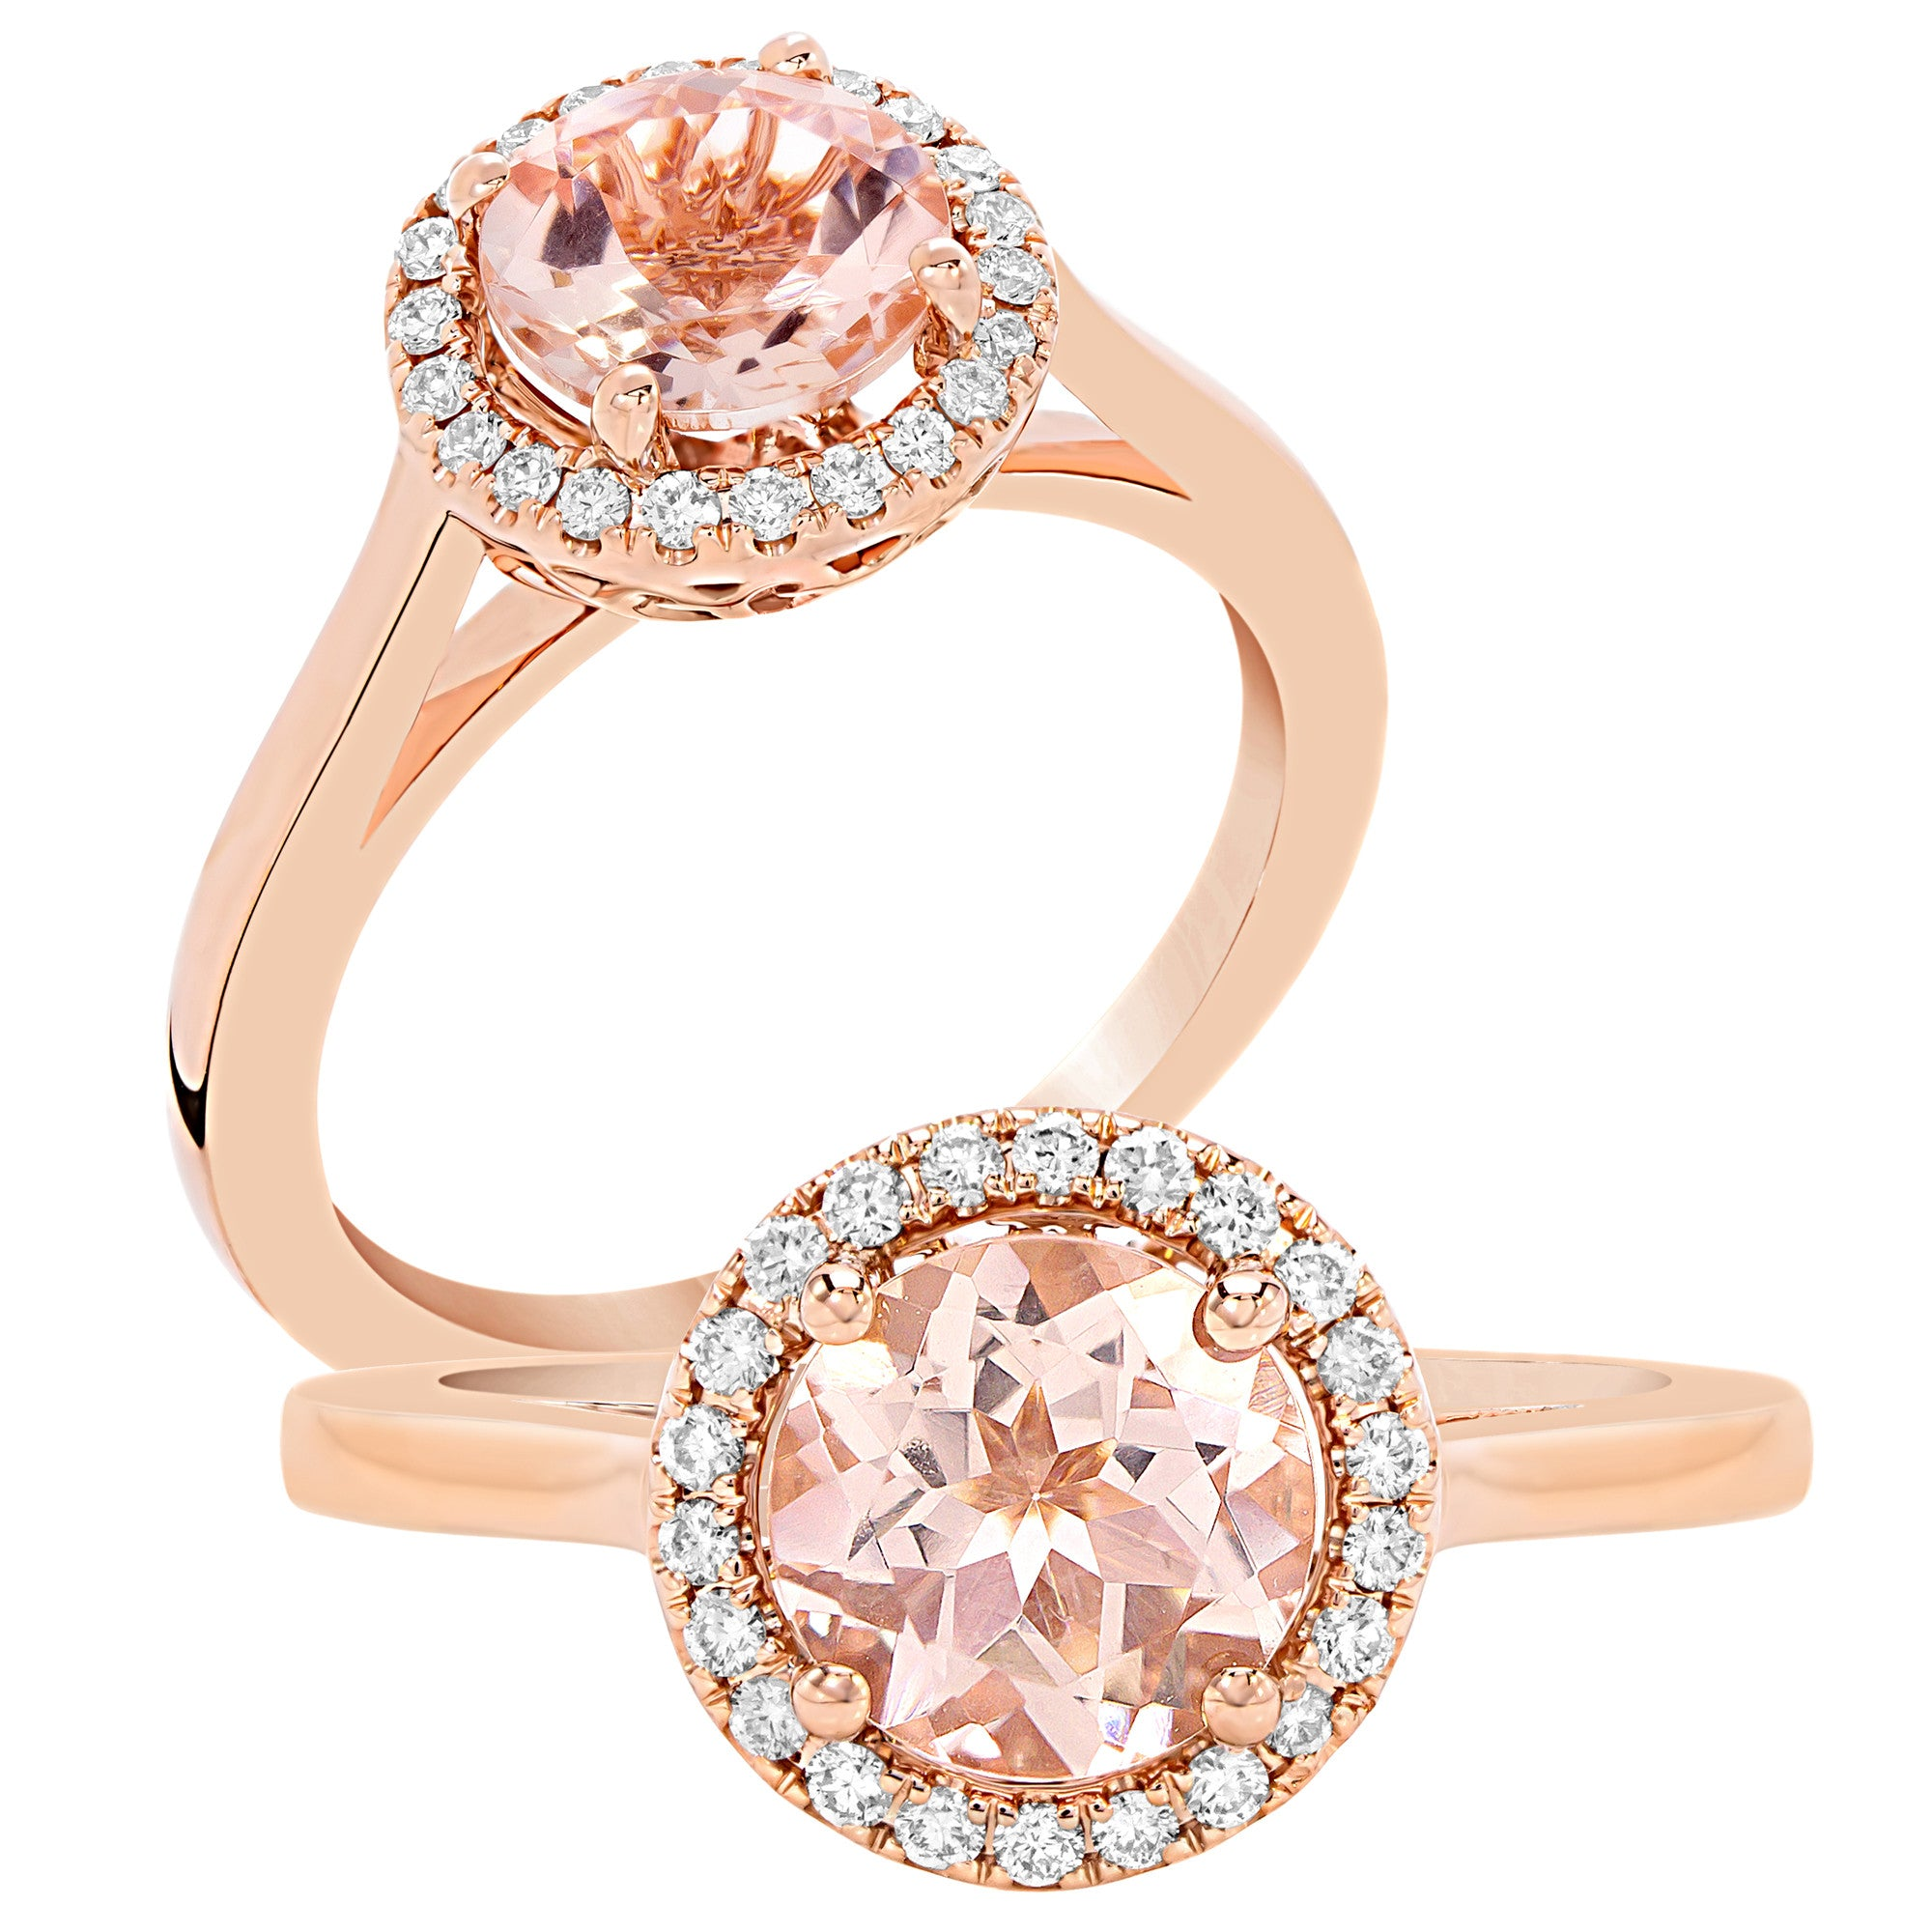 en birks ring morganite diamond diamonds muse pave with pav